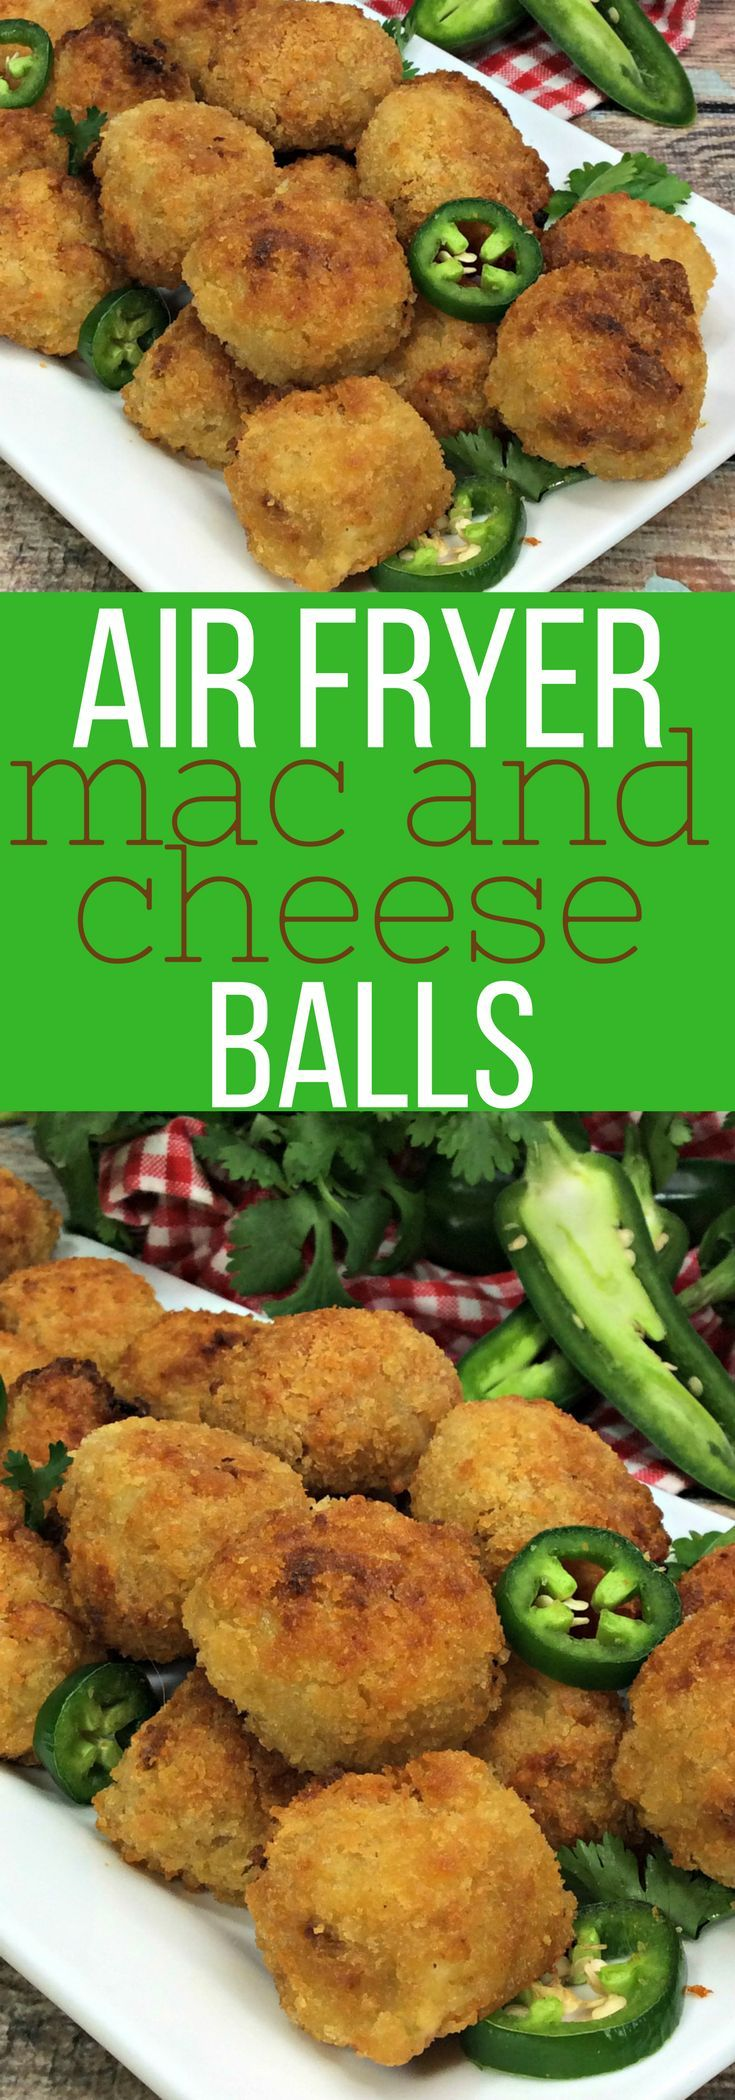 These Air Fryer Mac and Cheese Balls are classic comfort food at its finest. You will love the crispy outside and creamy cheese center. Mac and Cheese balls recipe in an Air Fryer at its finest.